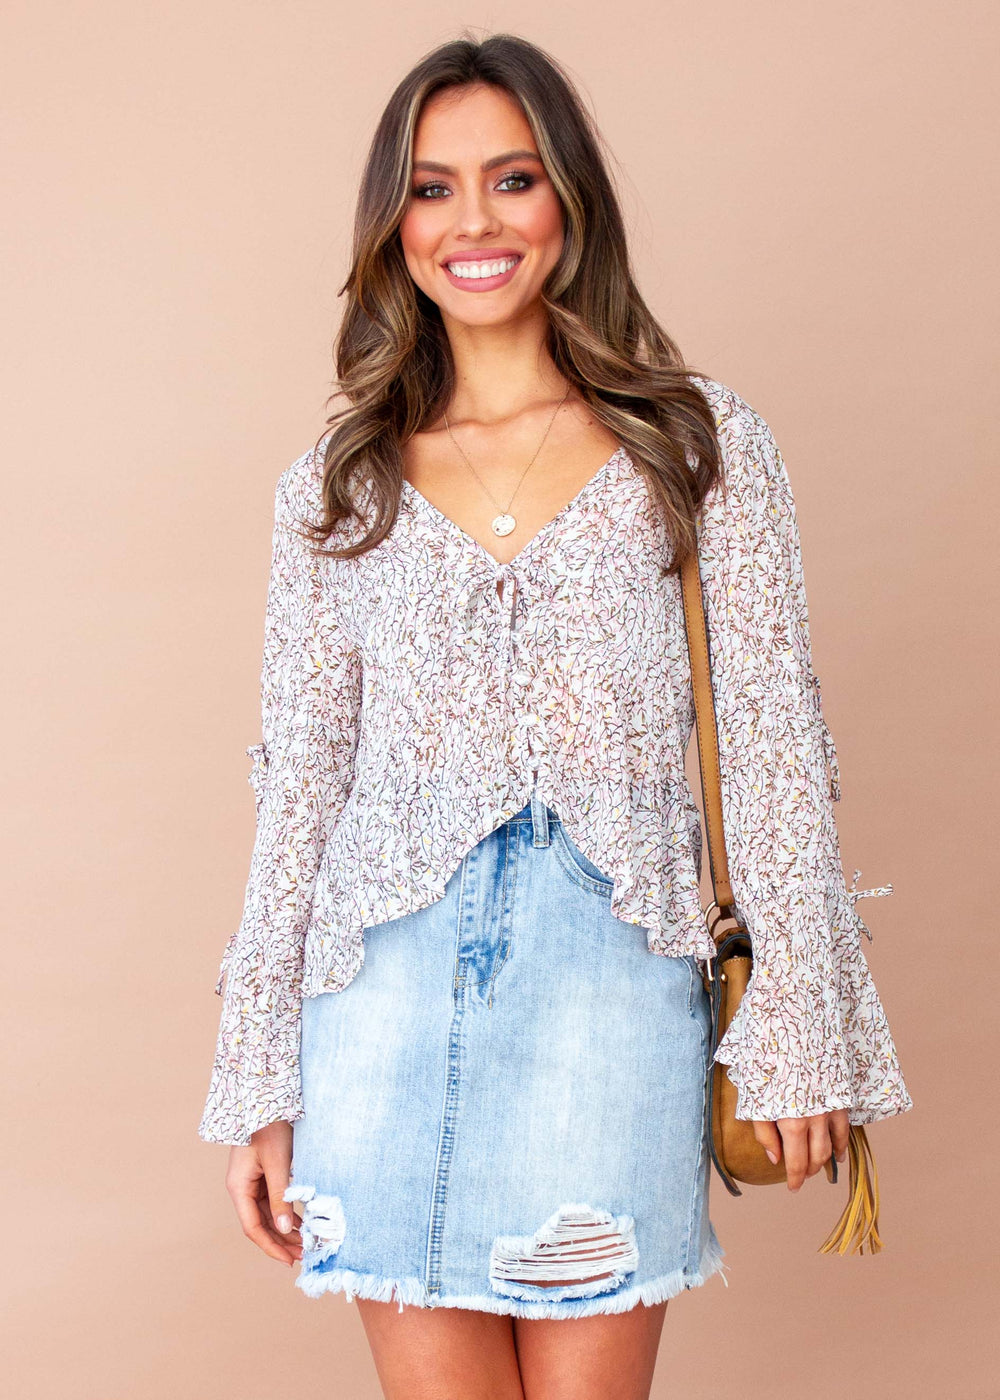 Rosewood Blouse - Blossom